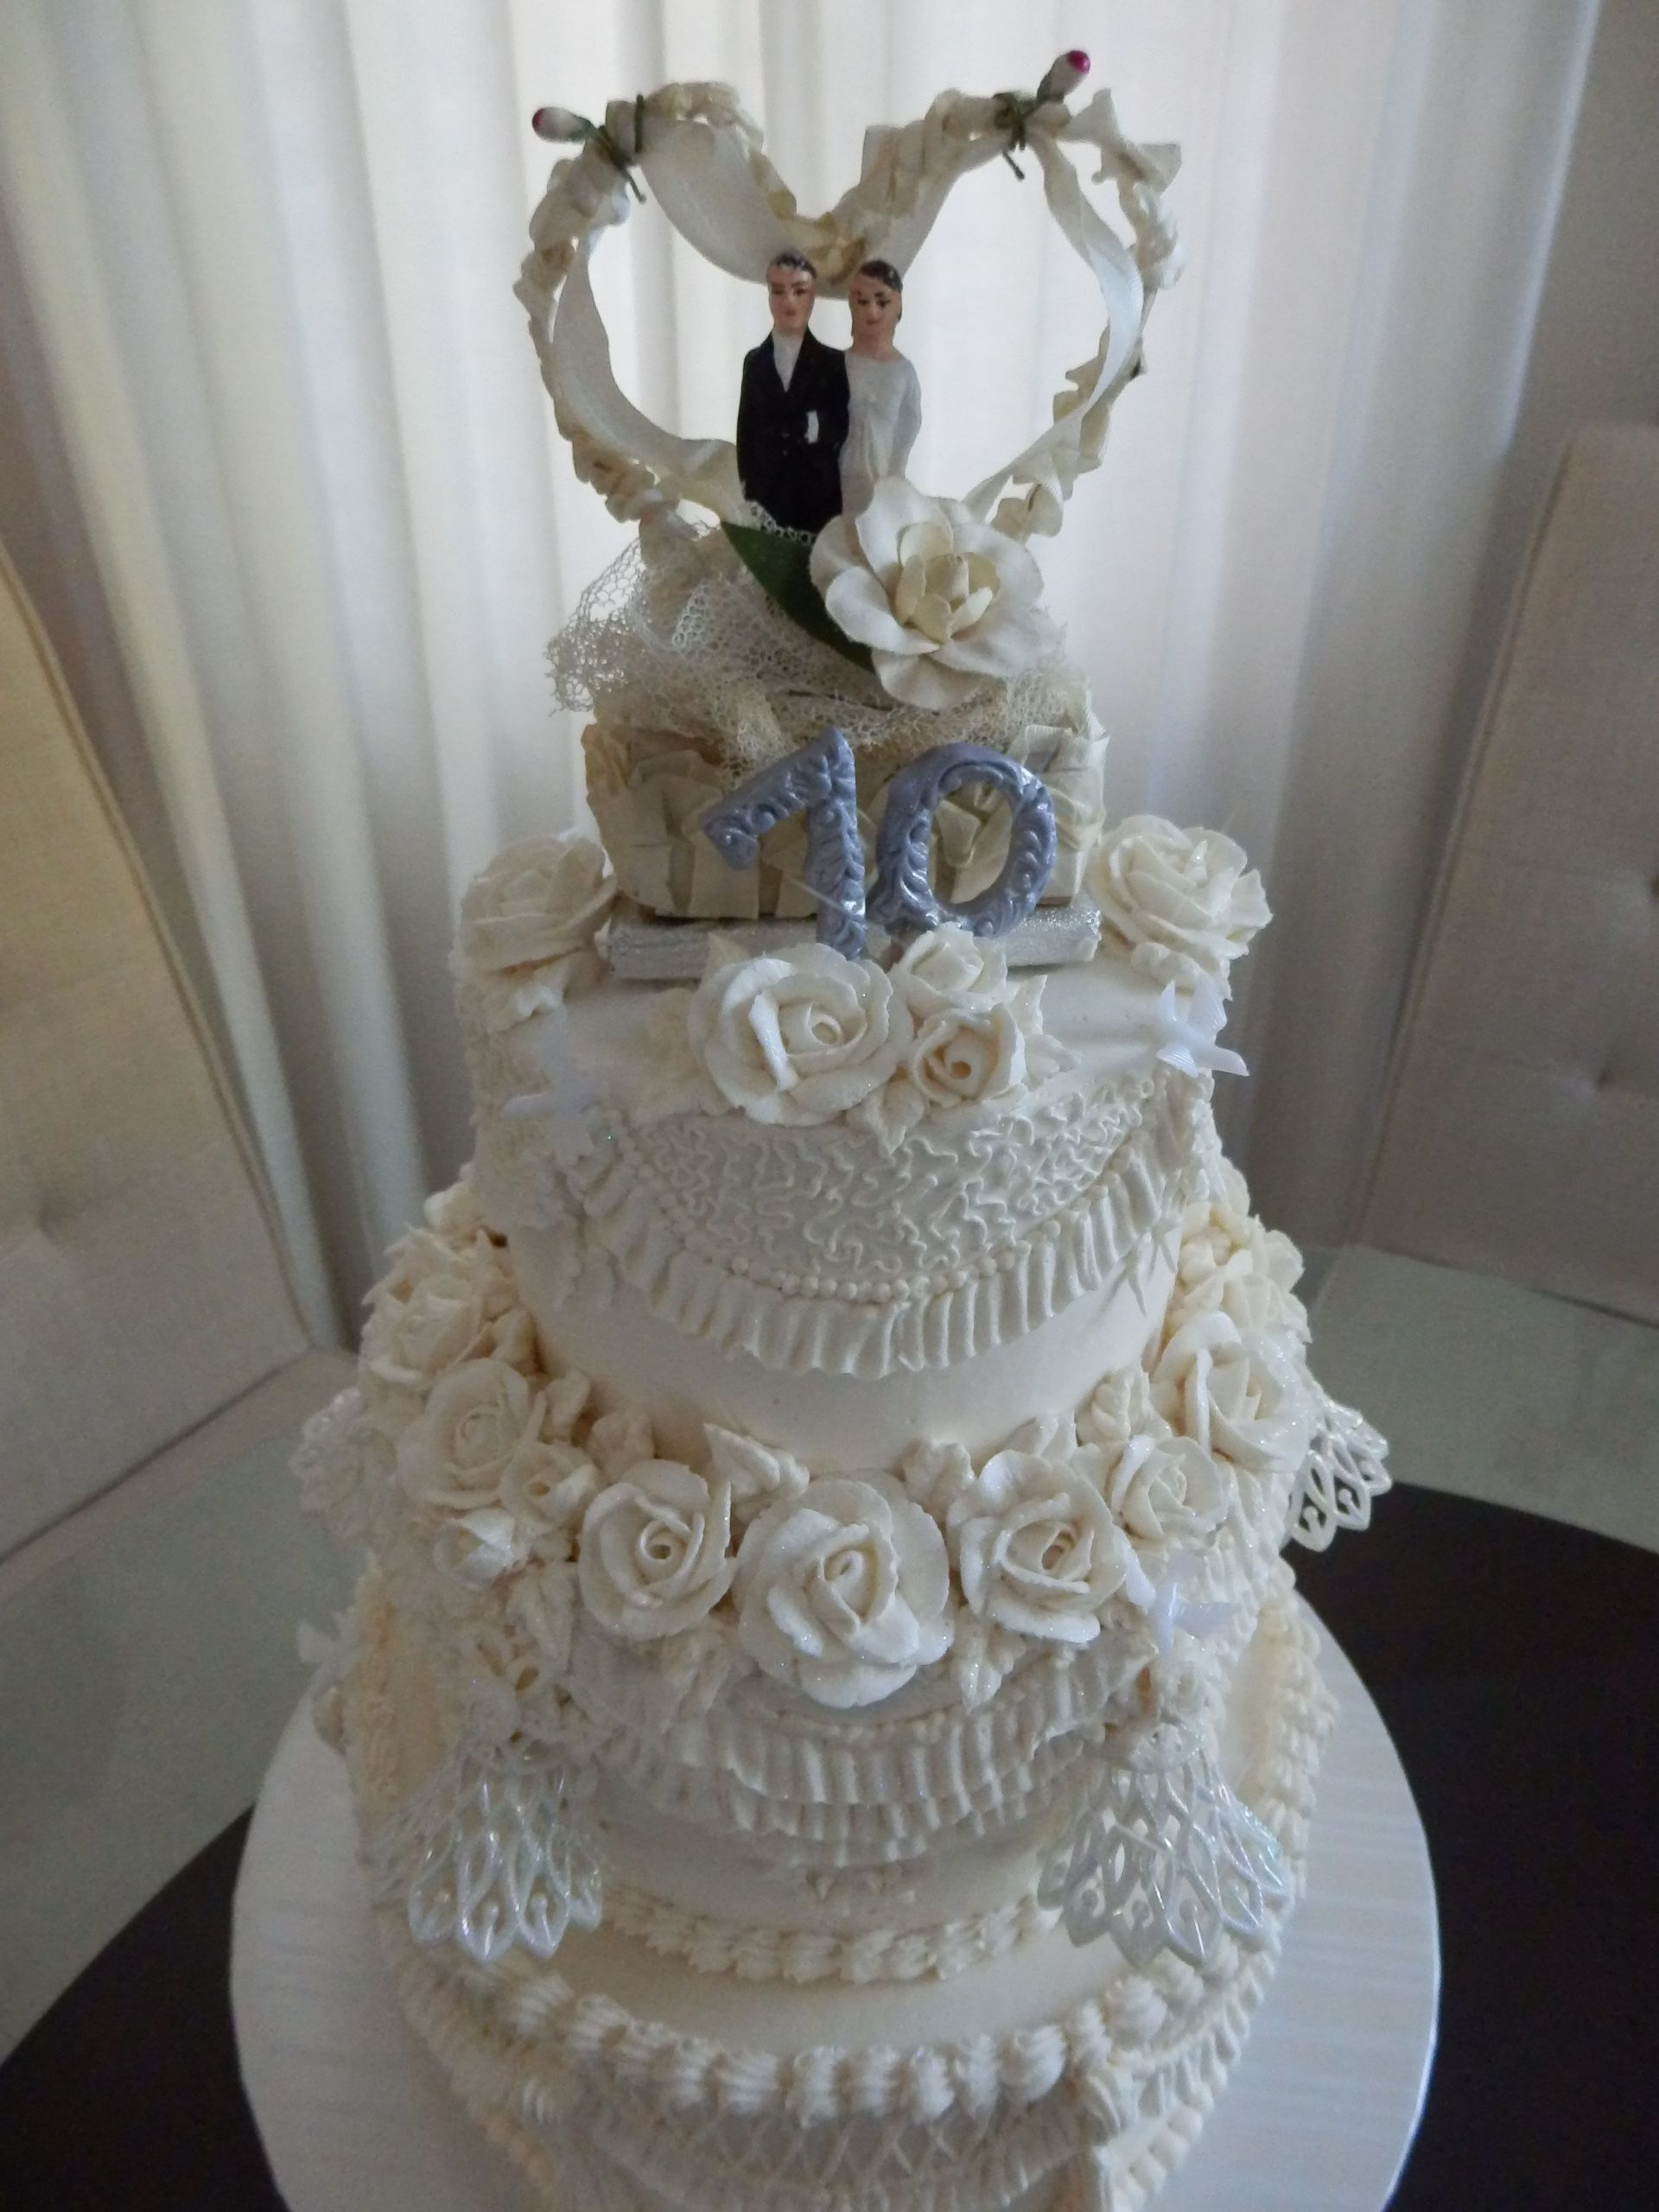 A real throwback way back th wedding anniversary cake with